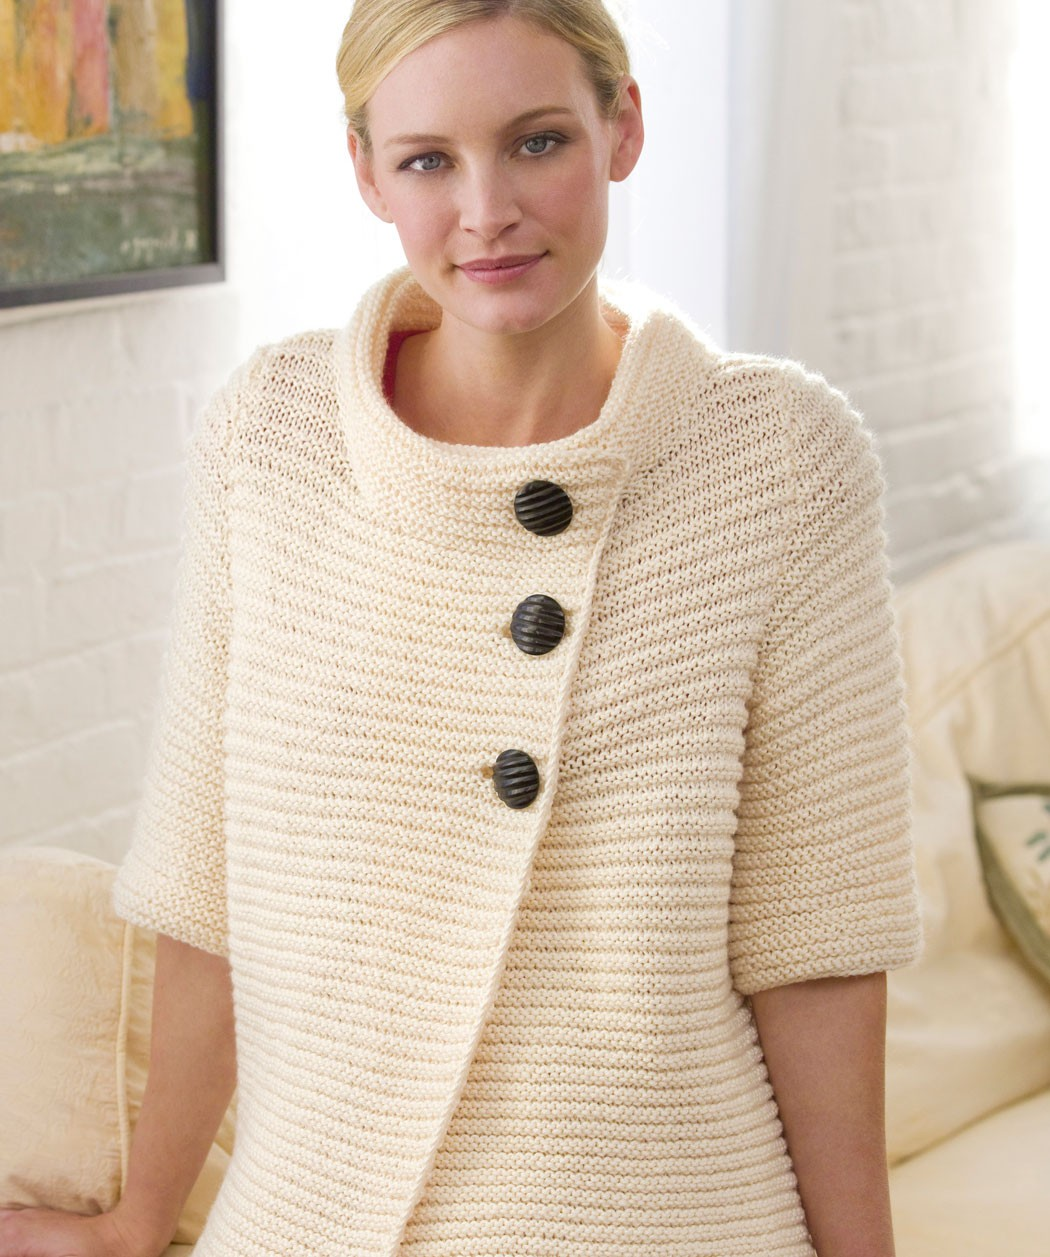 Knitting Patterns For Women : Knitted Sweater Patterns for Women A Knitting Blog